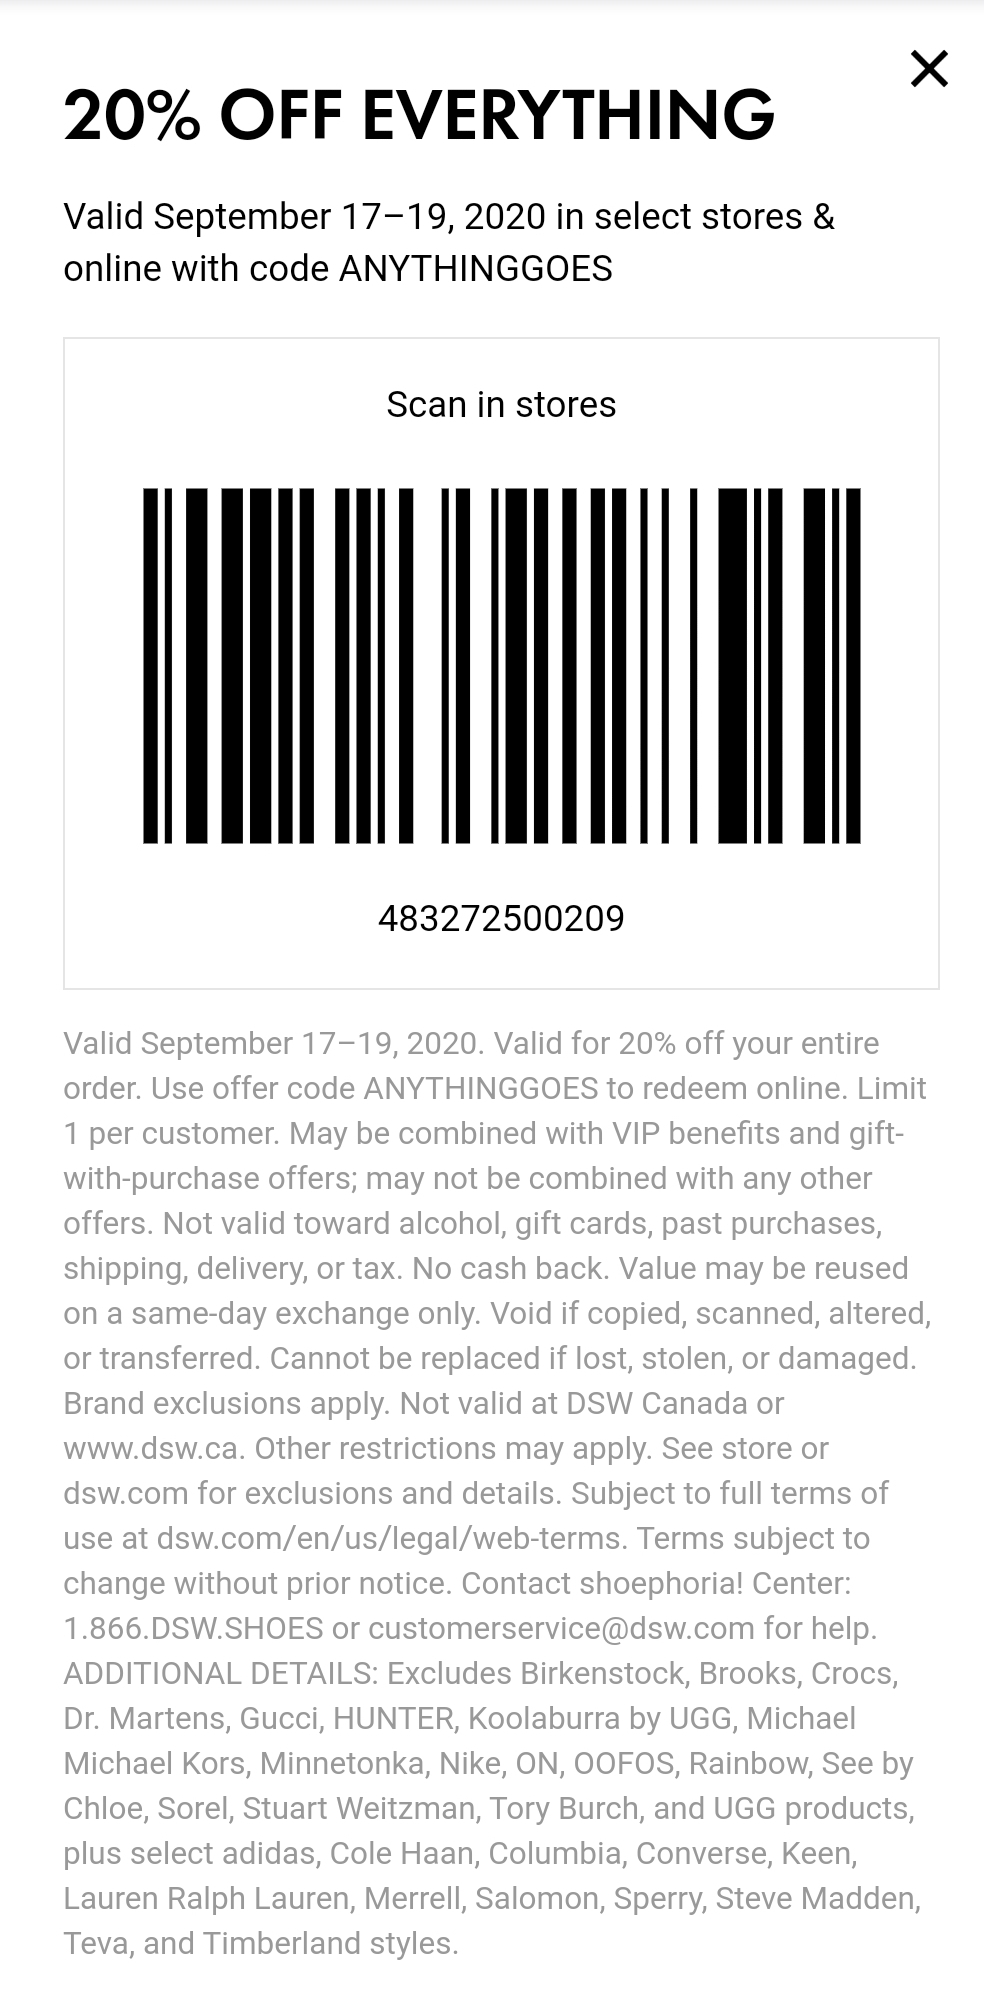 DSW Coupon: Extra 20% Off Storewide